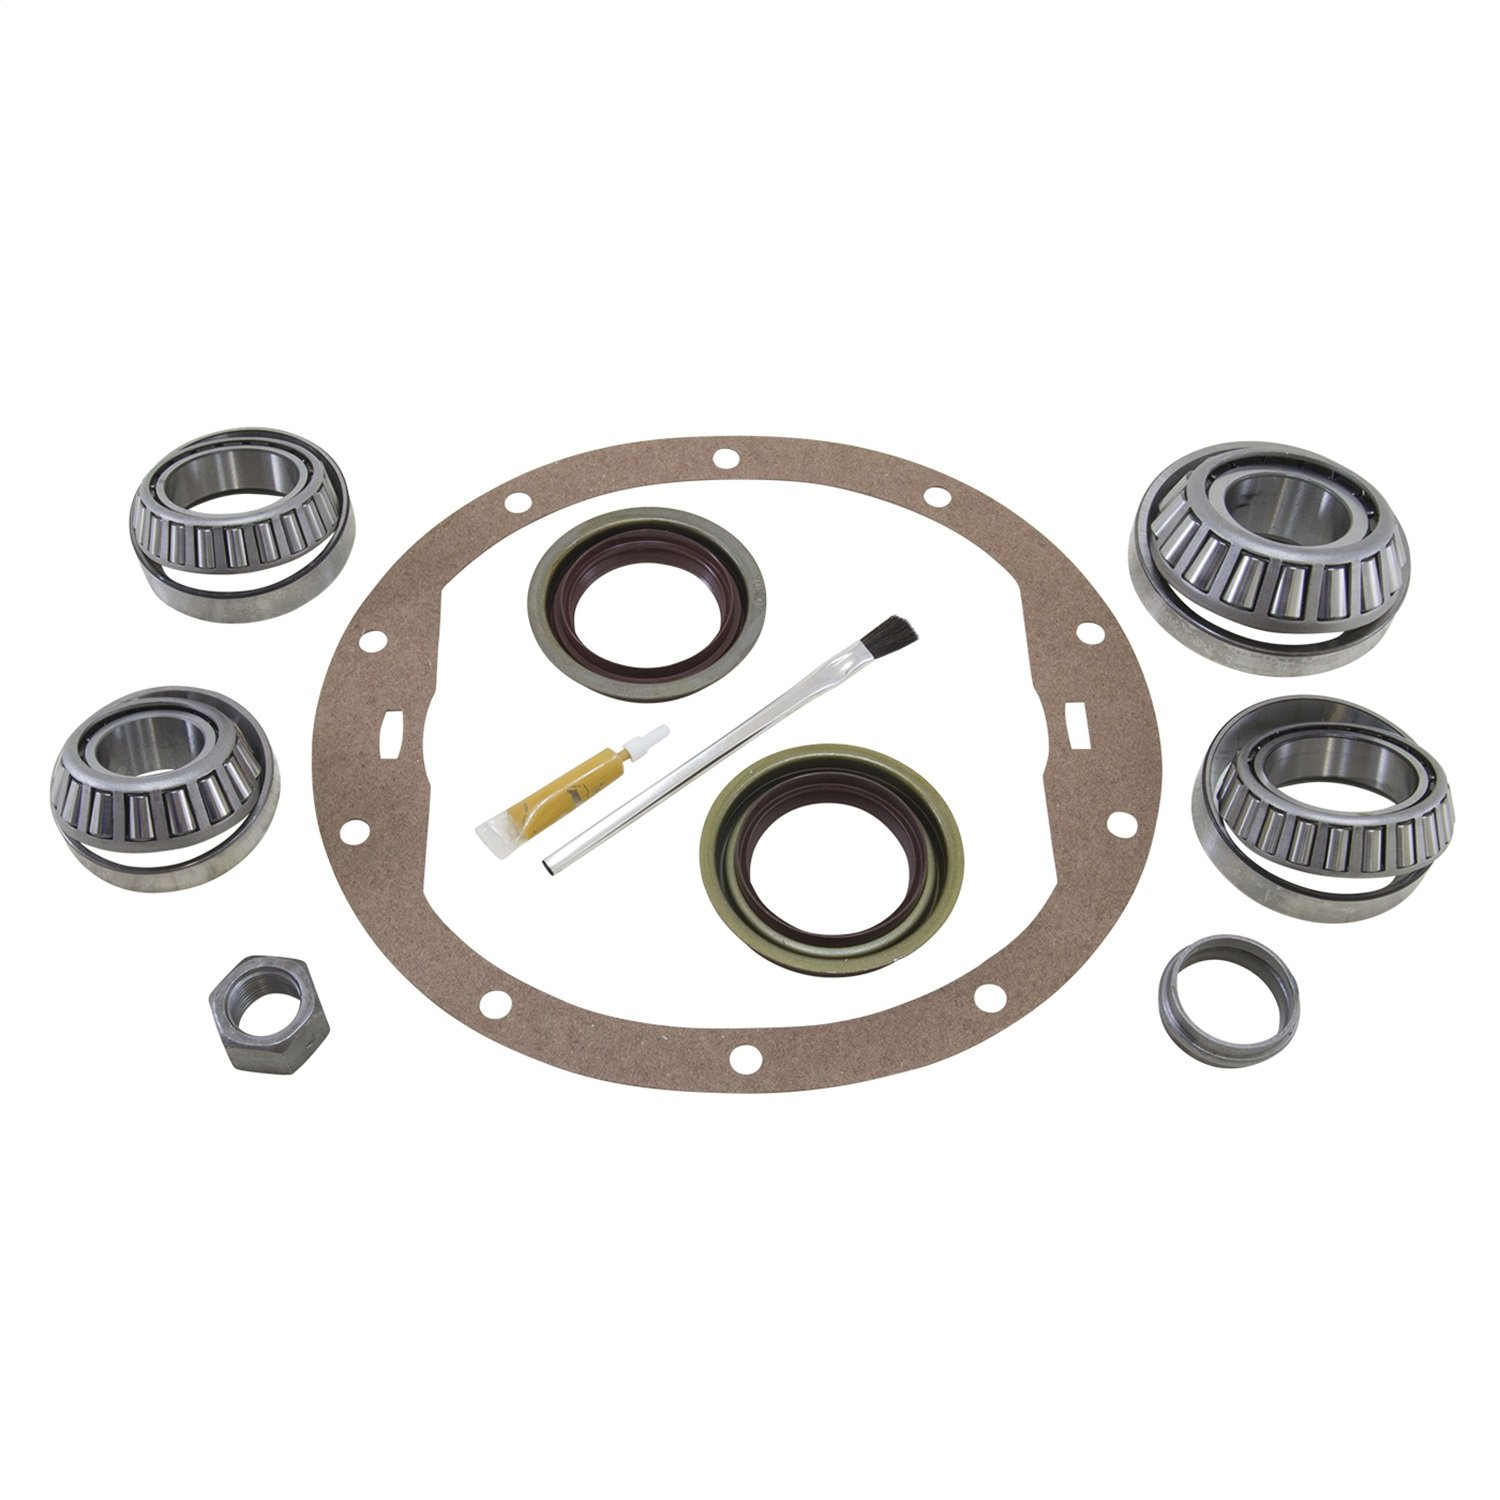 Yukon Gear & Axle (BK GM8.6-B) Bearing Installation Kit for GM 8.6 Differential